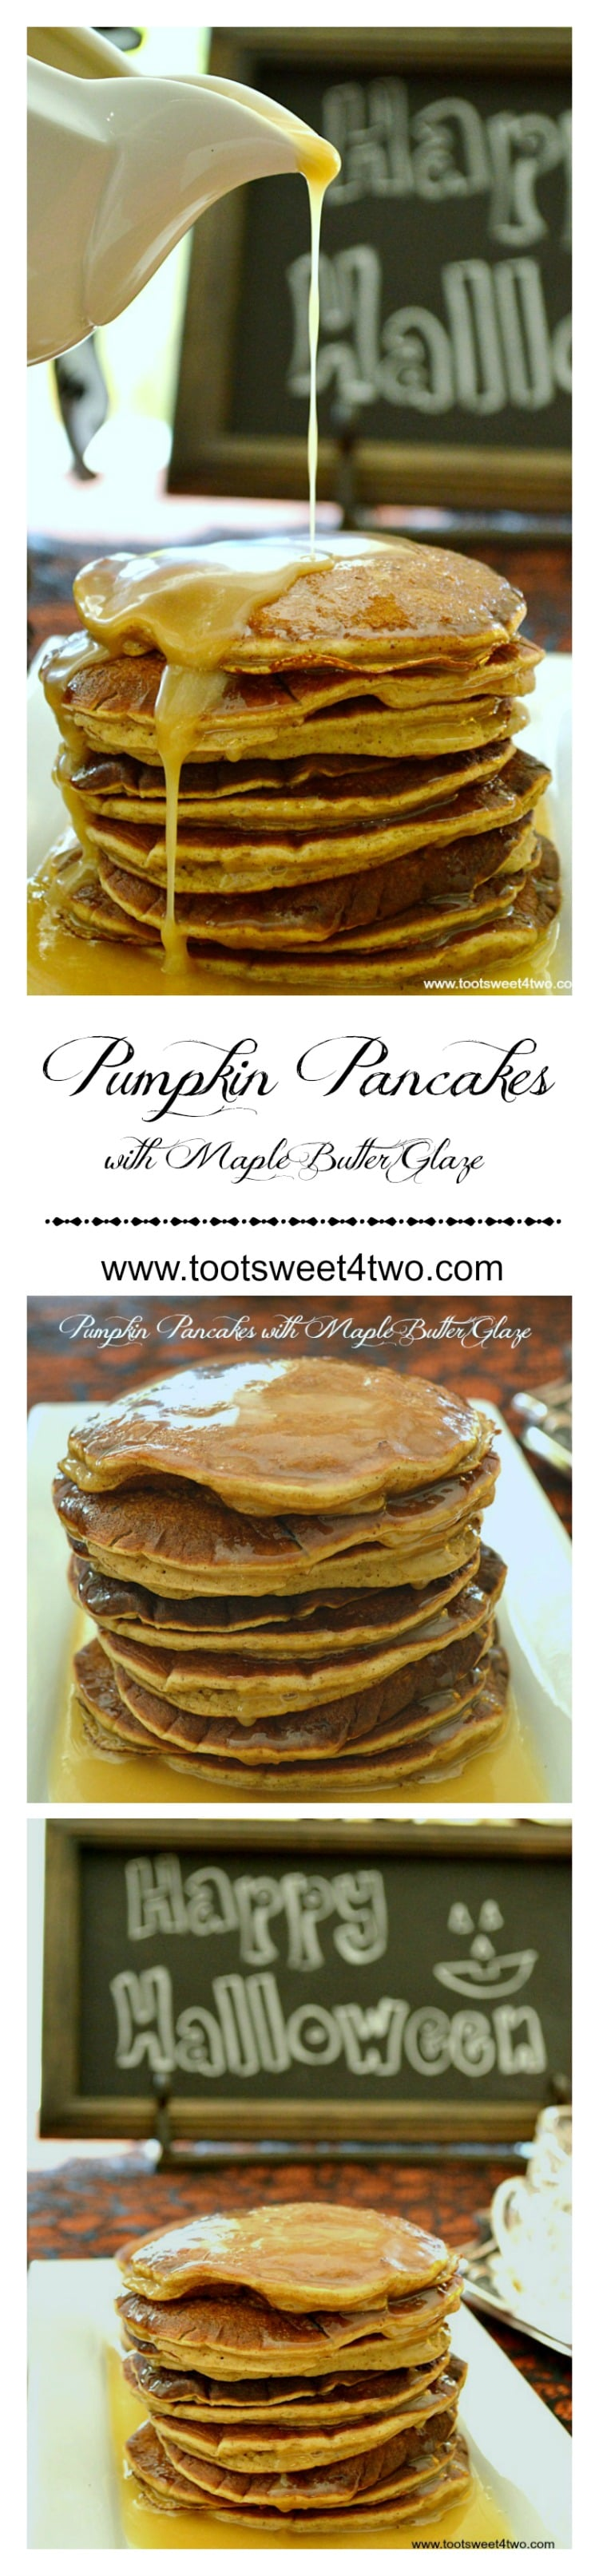 Pumpkin Pancakes with Maple Butter Glaze Pinterest collage